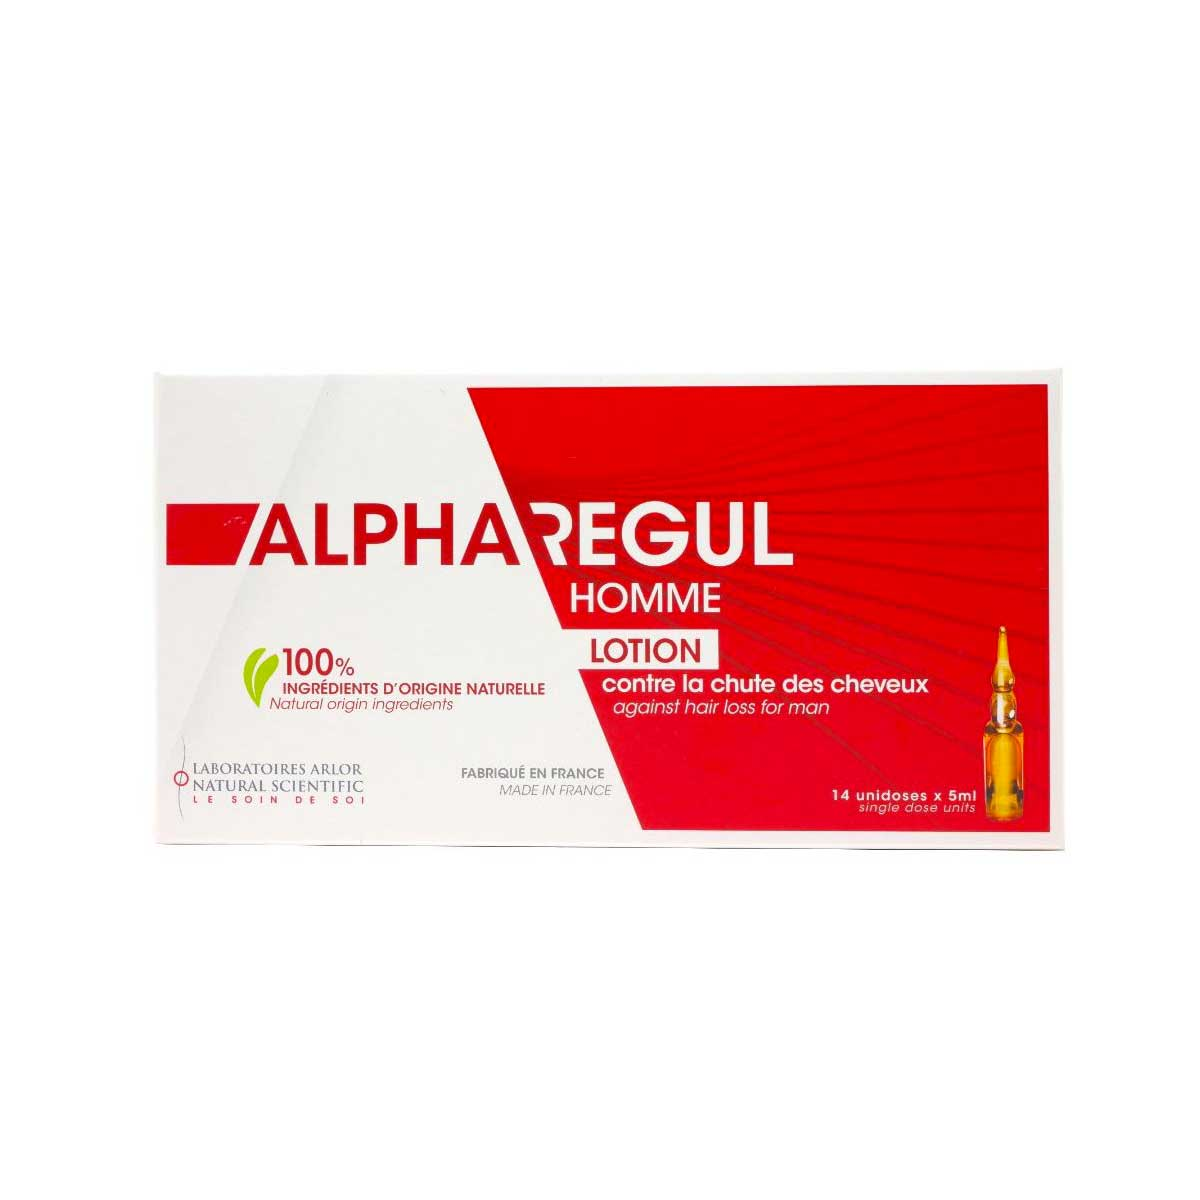 ALPHAREGUL HOMME Lotion